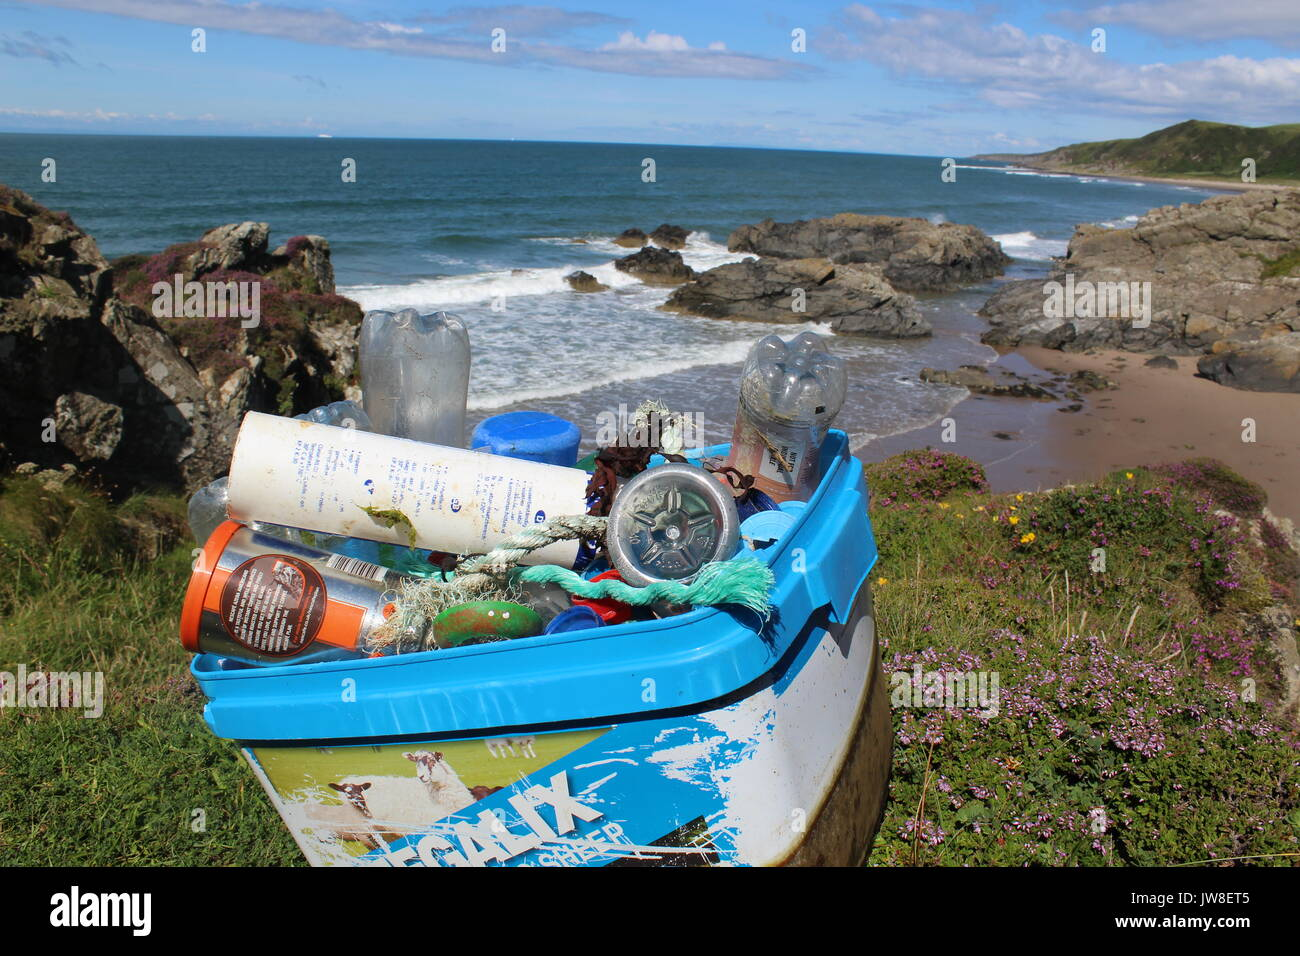 Pile of plastic rubbish cleaned from Killintringan beach in Dumfries and Galloway with rubbish in foreground and beach and blue skies in background - Stock Image